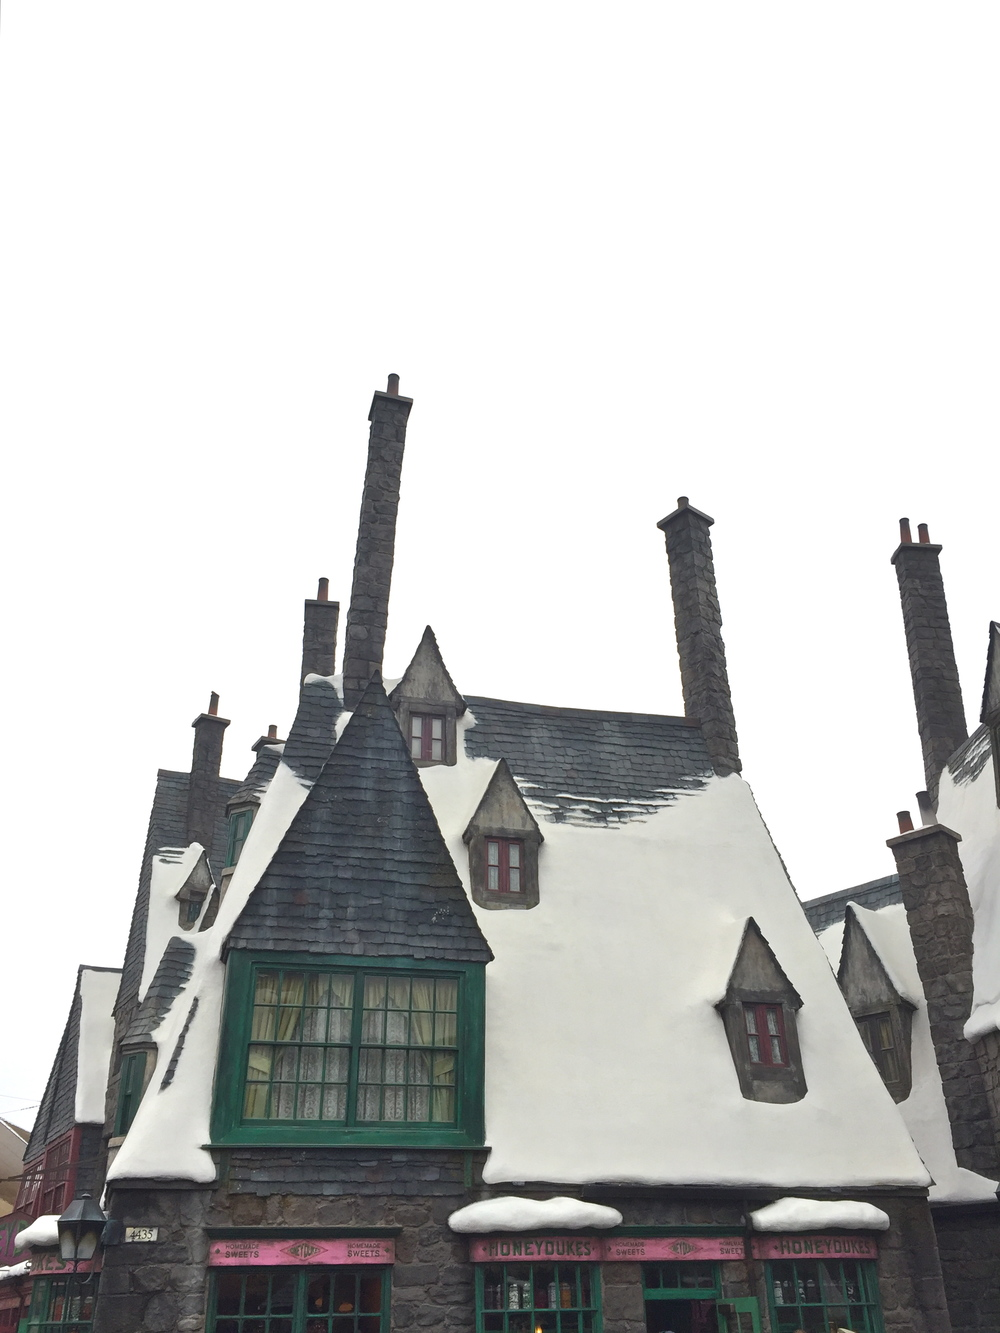 harrypotterworldhollywood_50.jpg